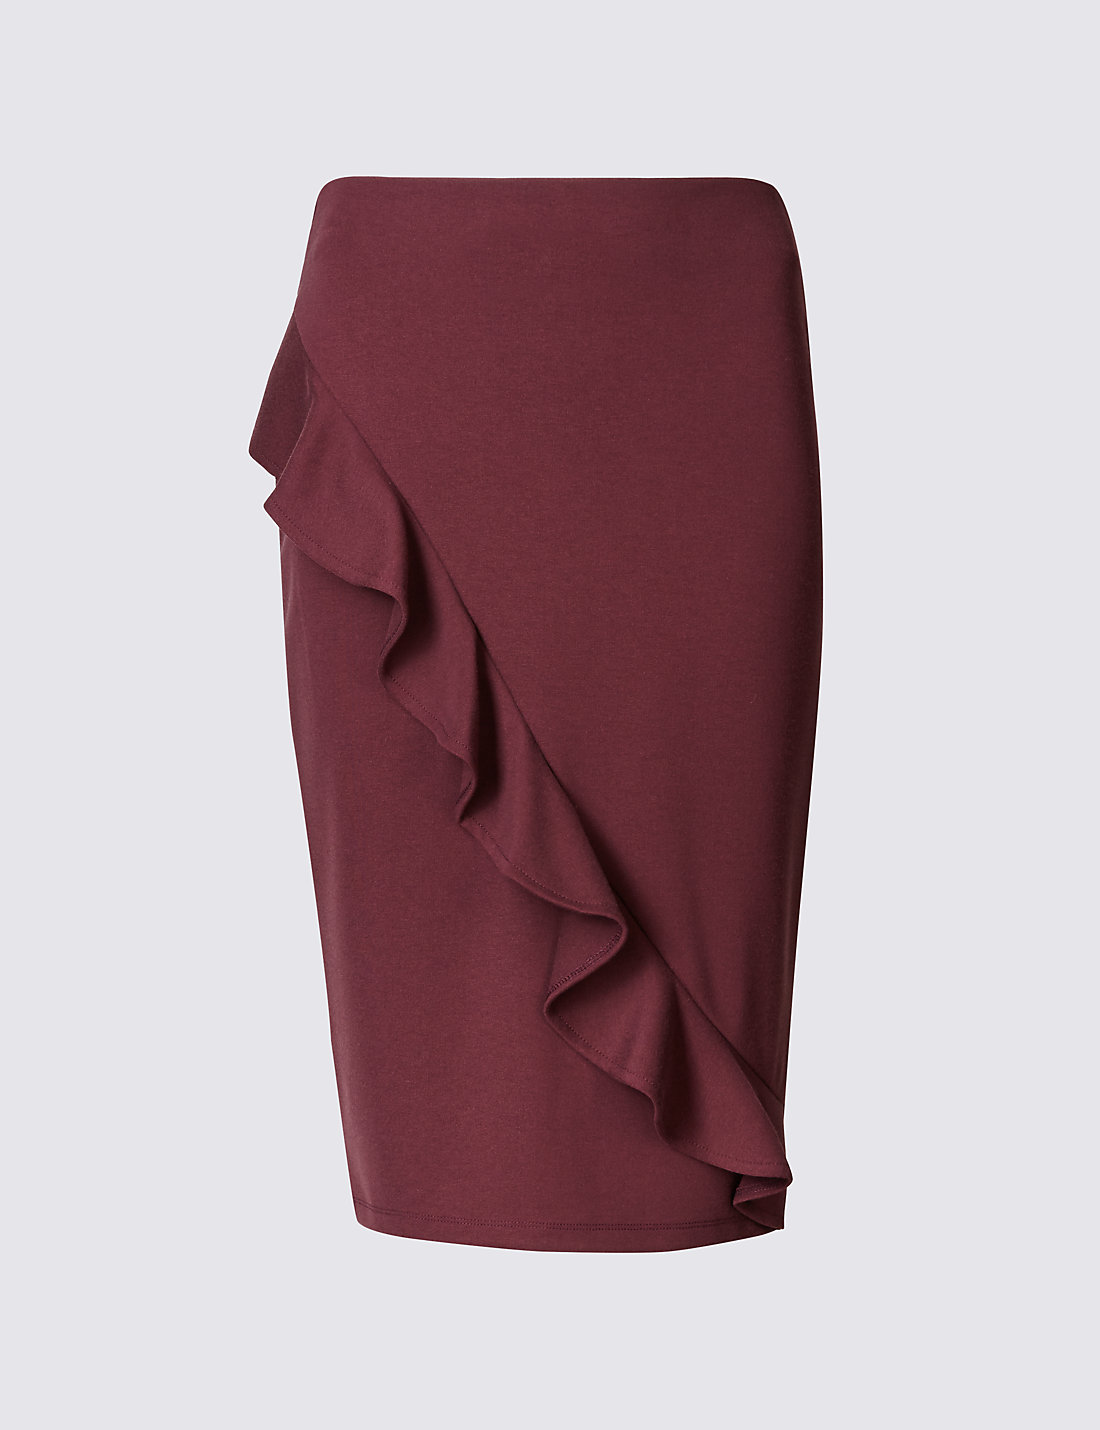 Ruffle Pencil Midi Skirt | M&S